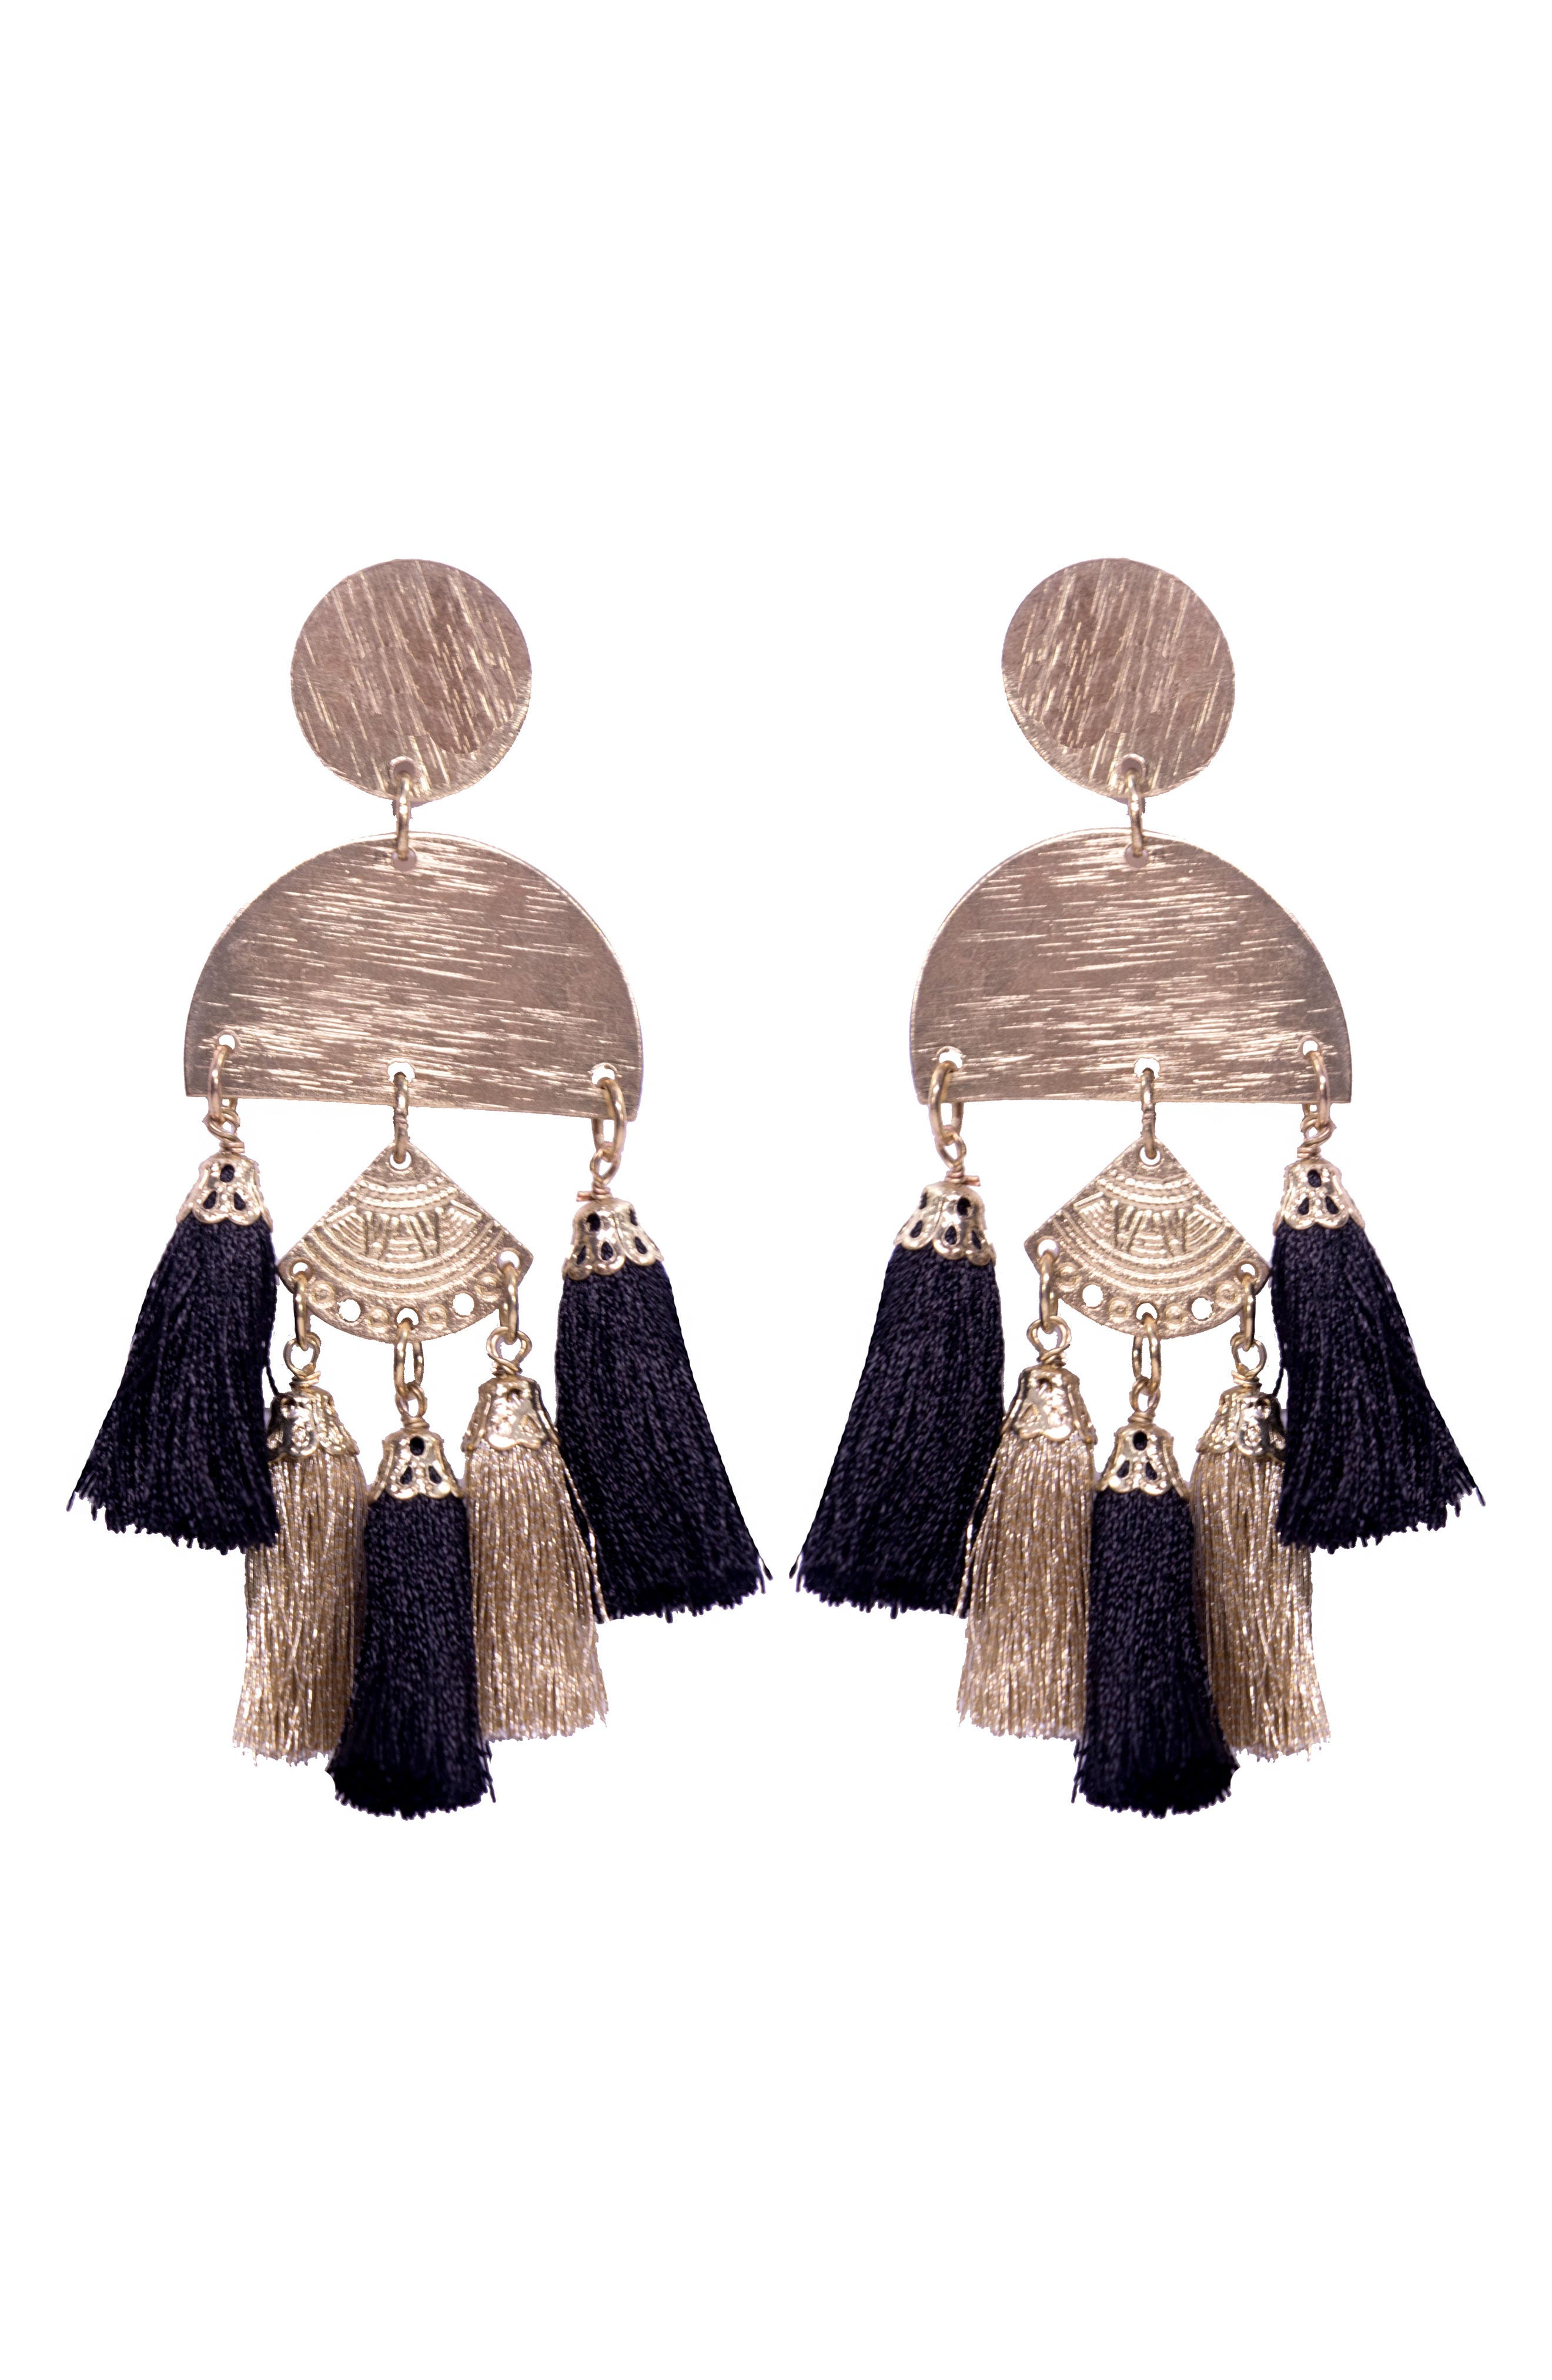 Bali Tassel Earrings,                         Main,                         color,